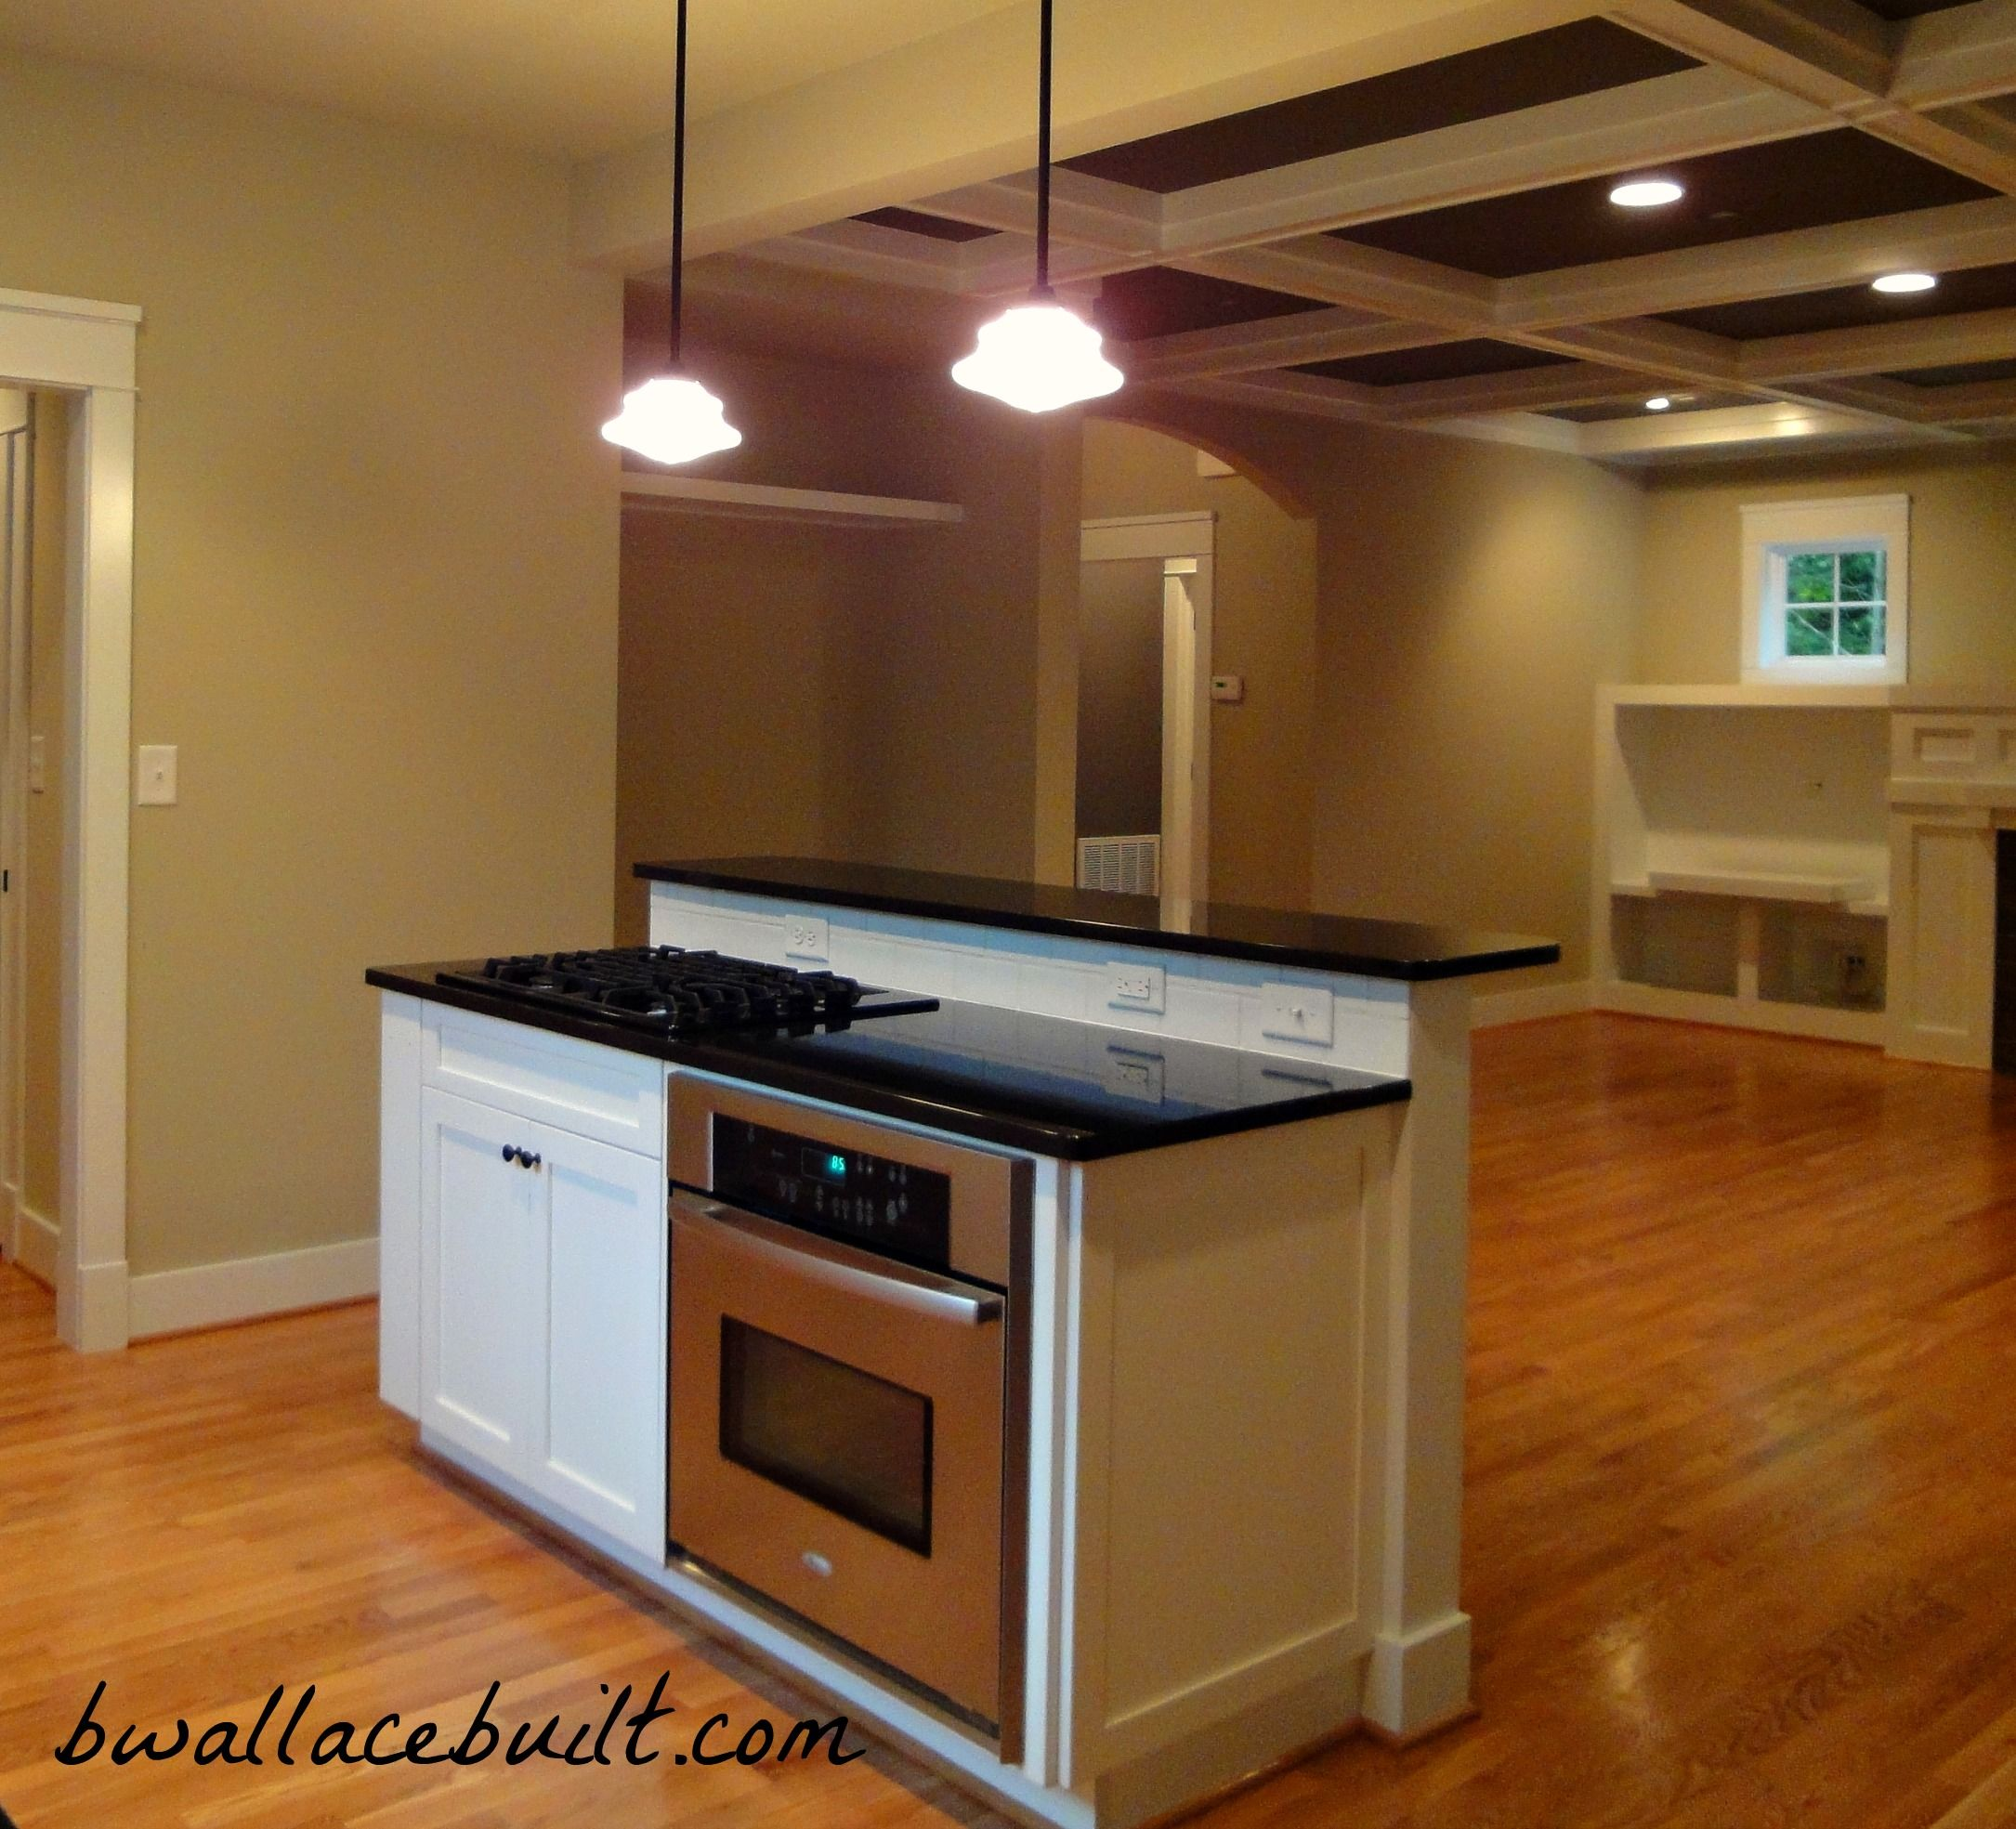 Kitchen Island Ideas With Stove Top kitchen island with separate stove top from oven. | perfect